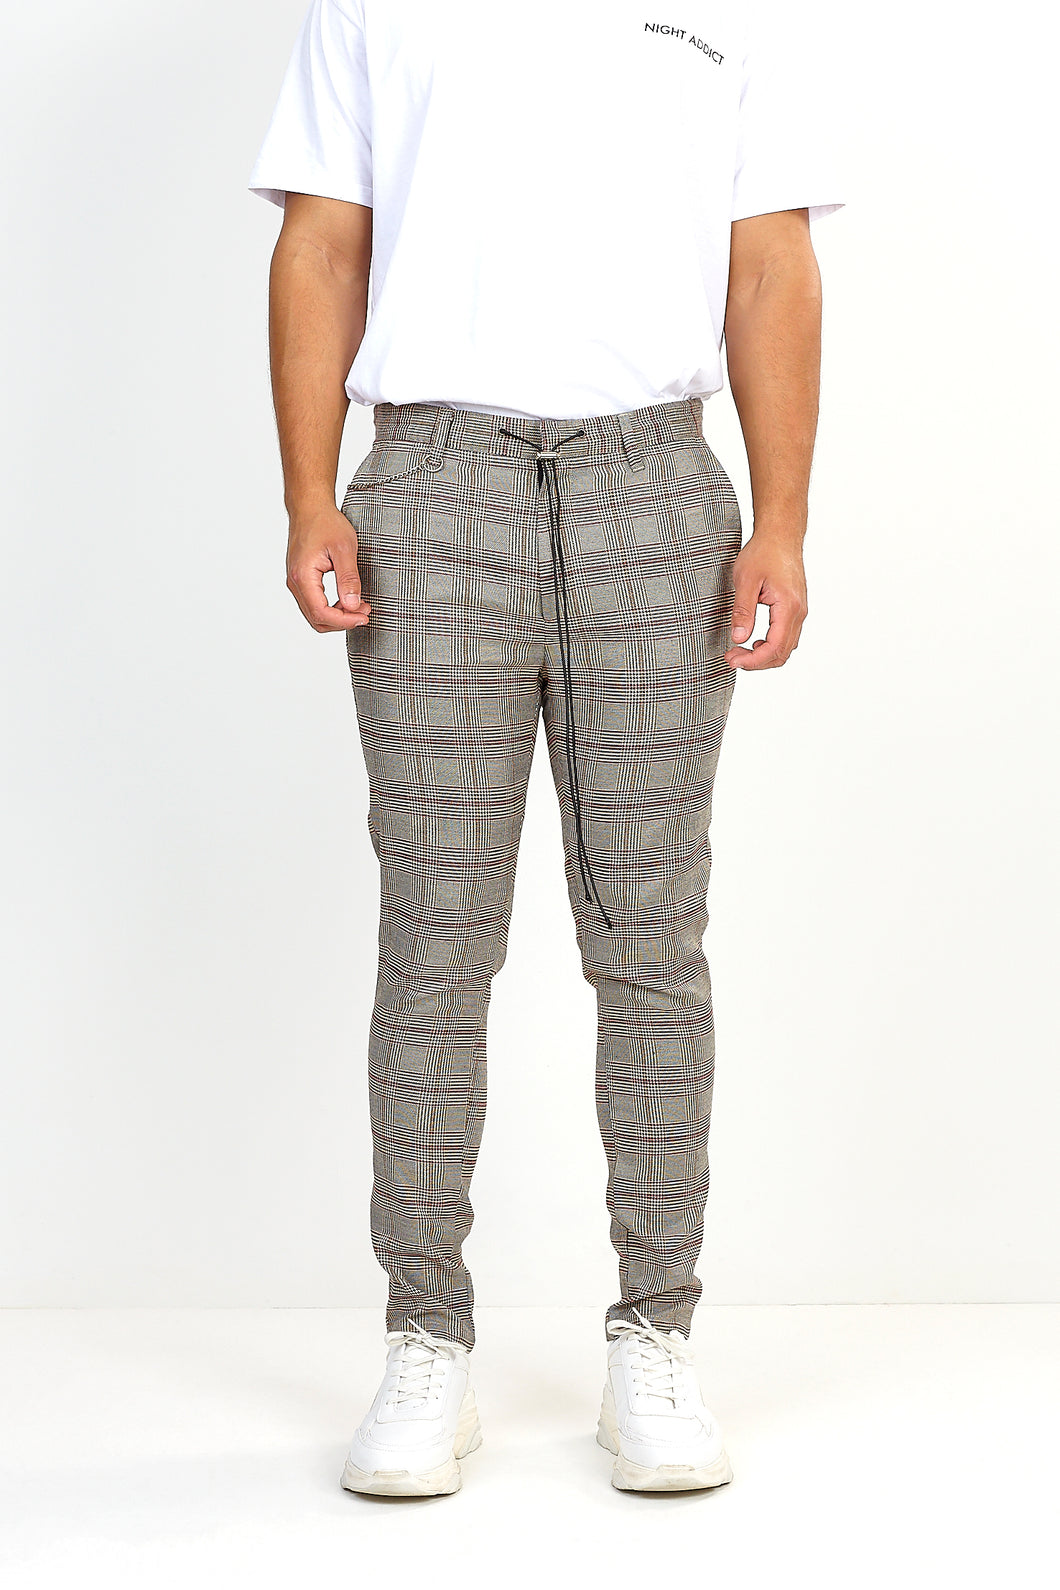 NIGHT ADDICT TAN CHECK DRAW-CORD TROUSERS FRONT